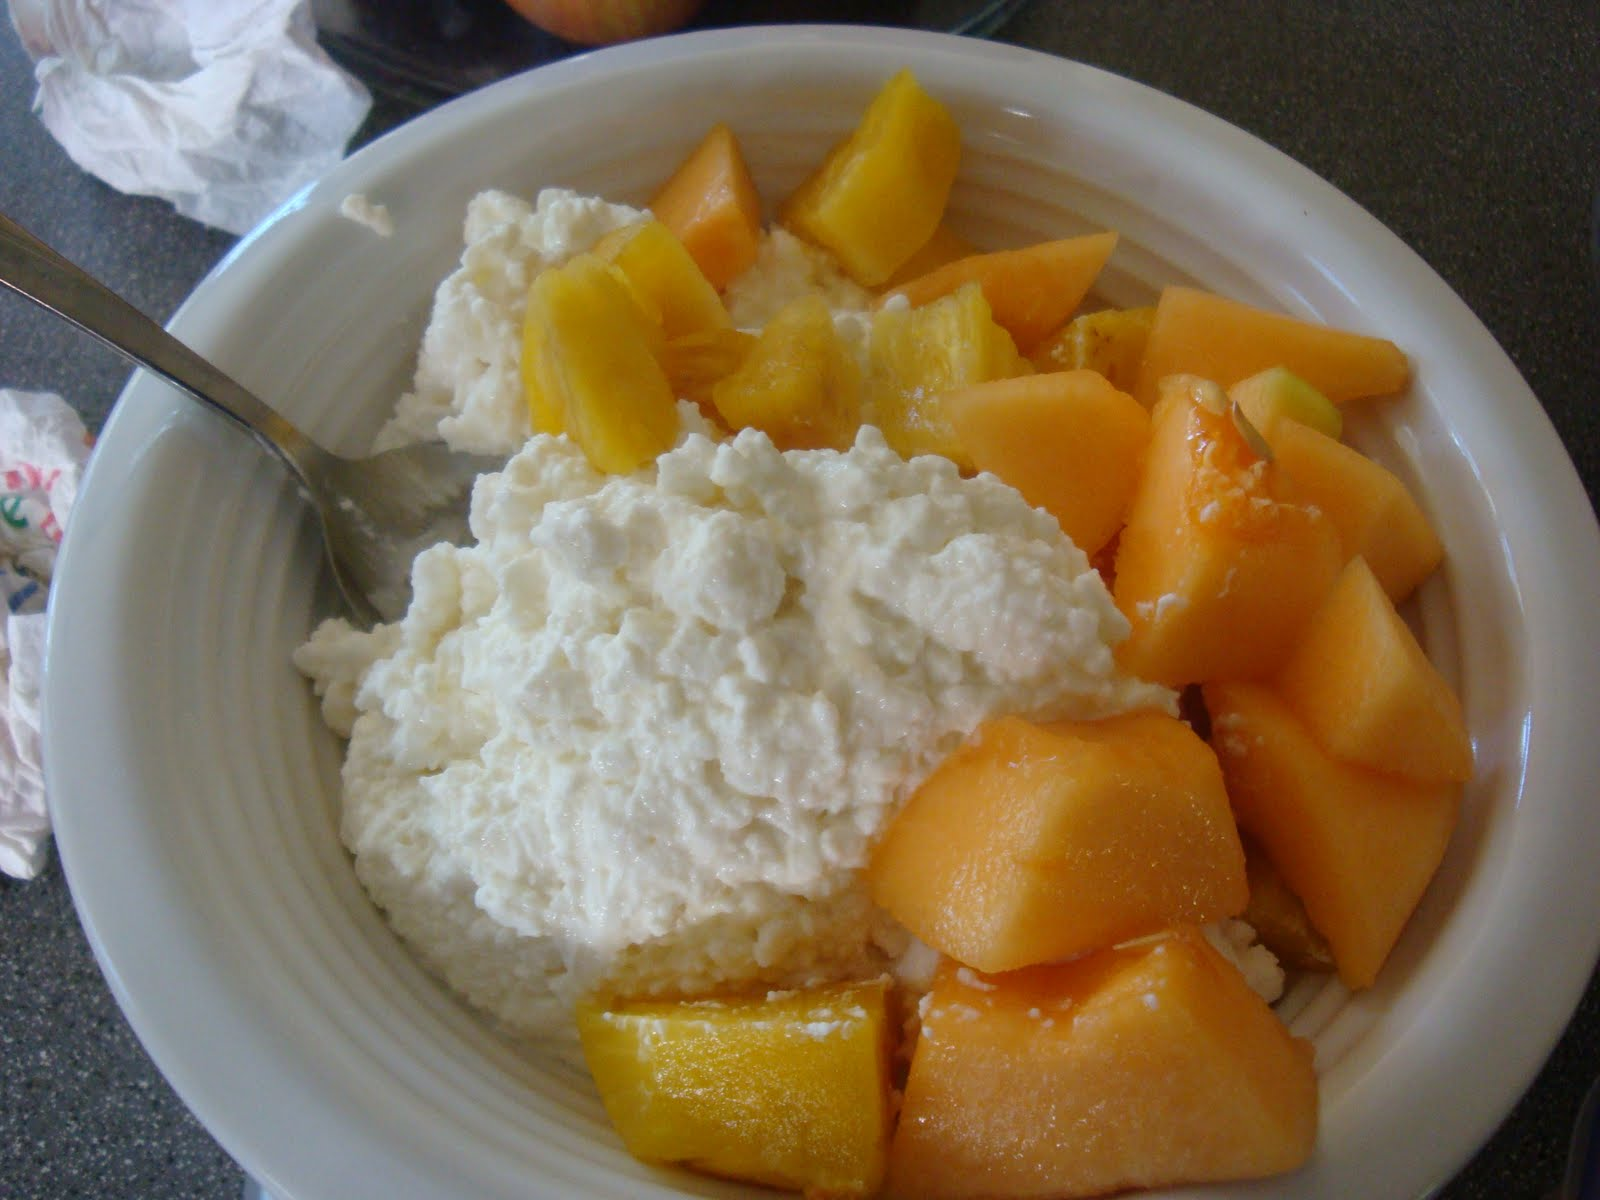 My Friend Had Been Talking About Peaches And Cottage Cheese That I Brought For Lunch Saw Where He Was Coming From An Observer Might Lose His